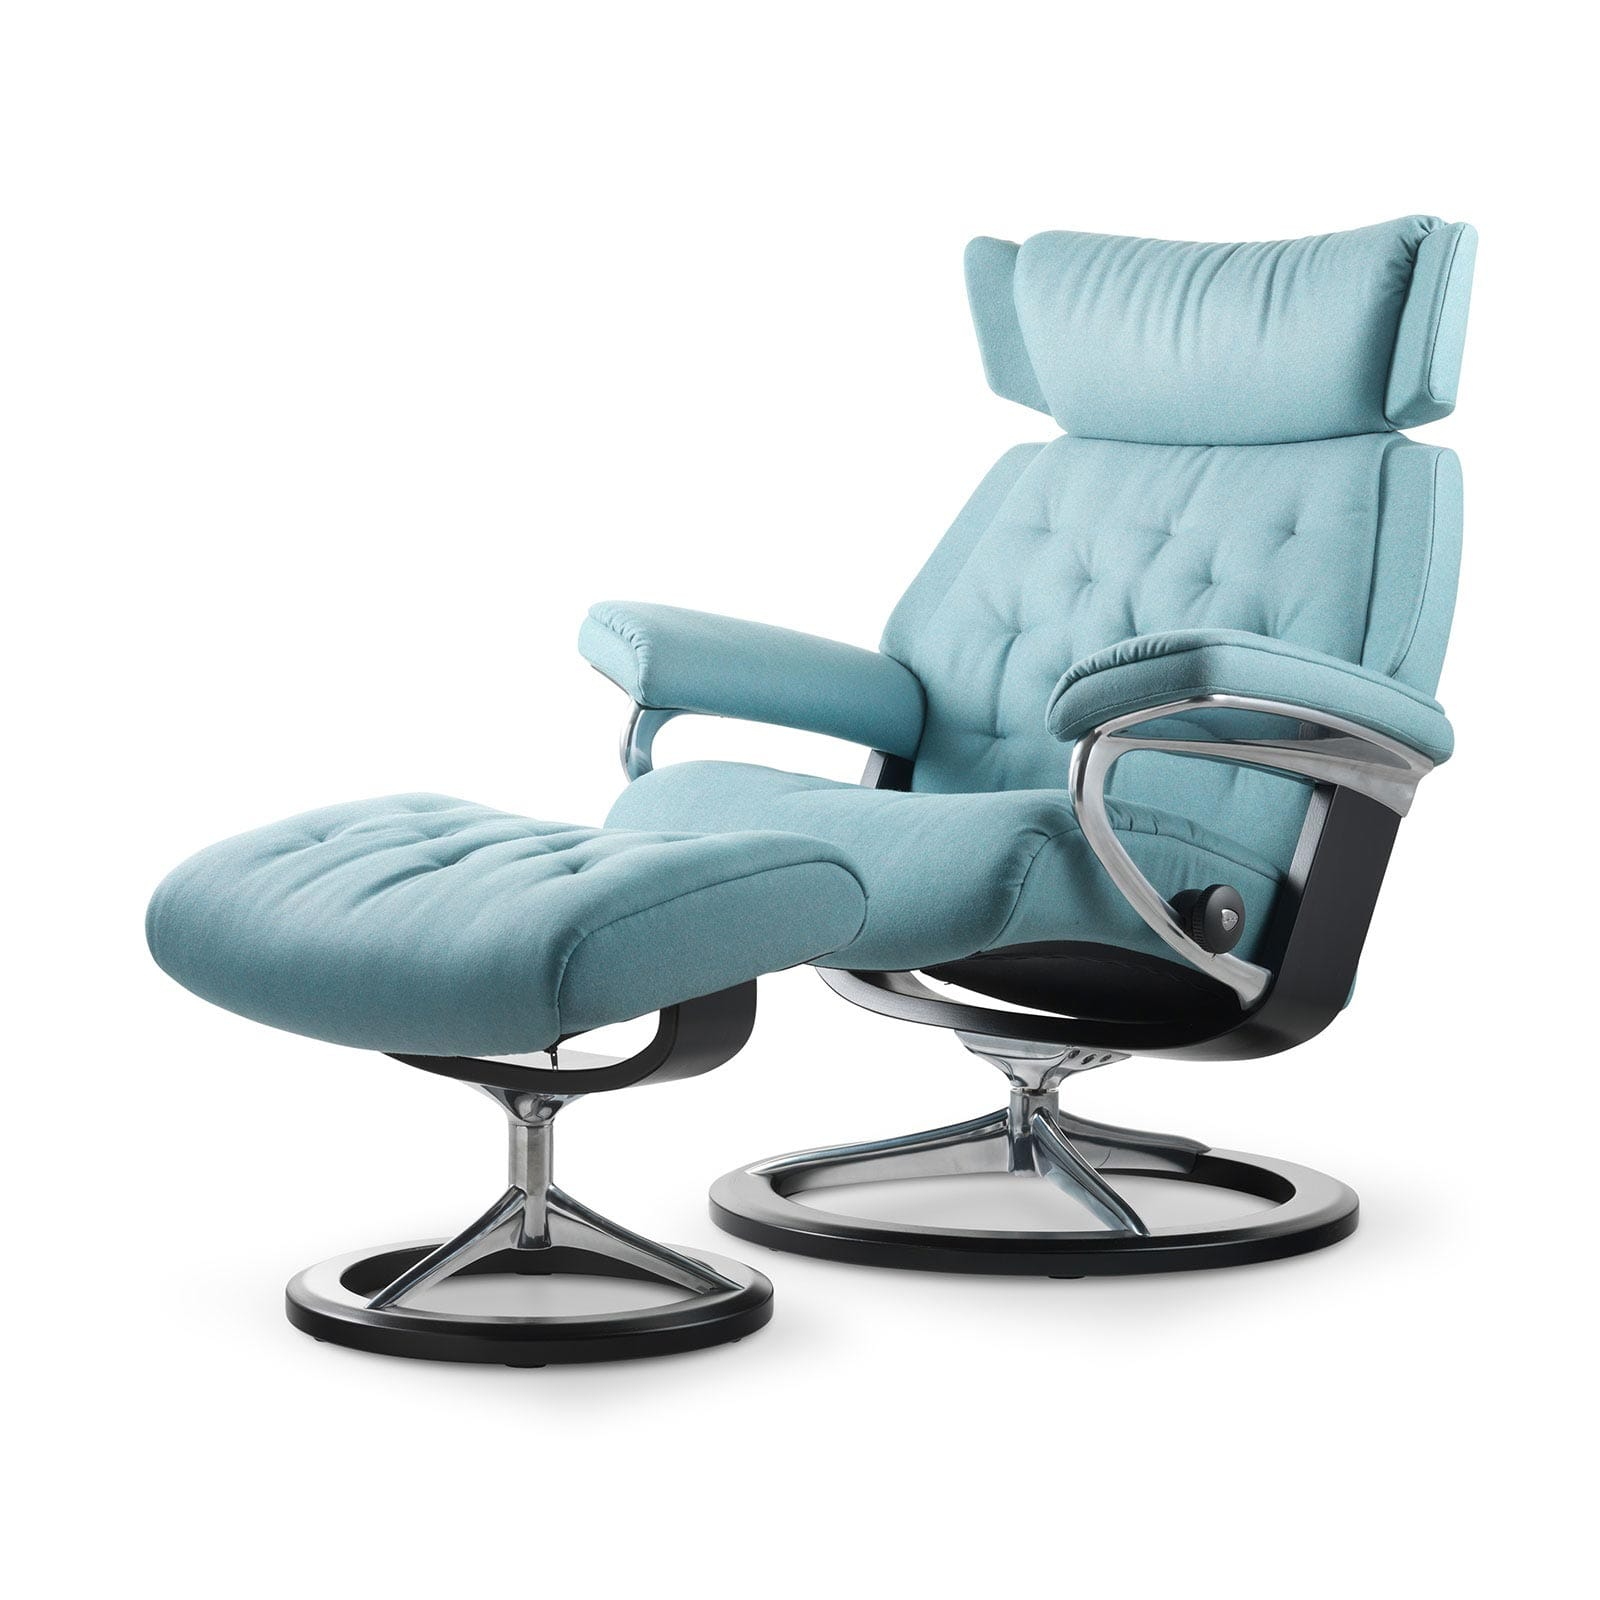 stressless skyline calido aqua signature wenge mit hocker. Black Bedroom Furniture Sets. Home Design Ideas